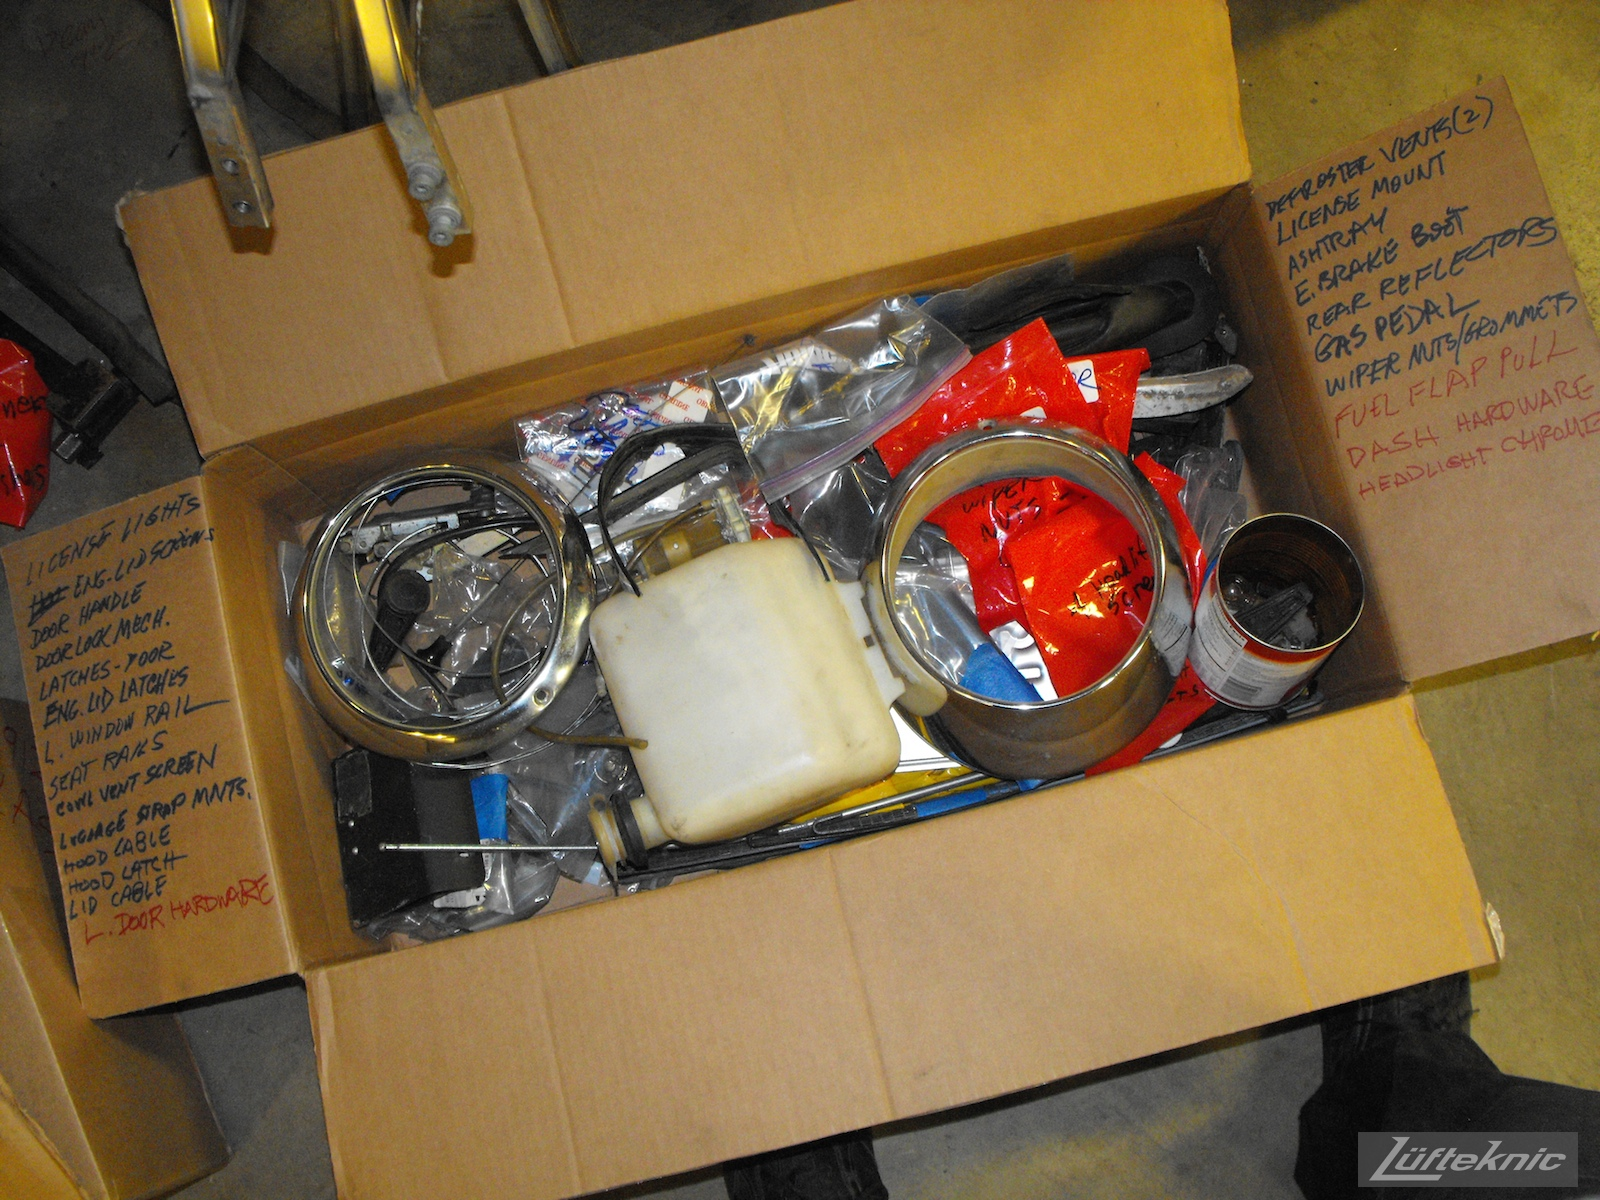 Parts going into storage